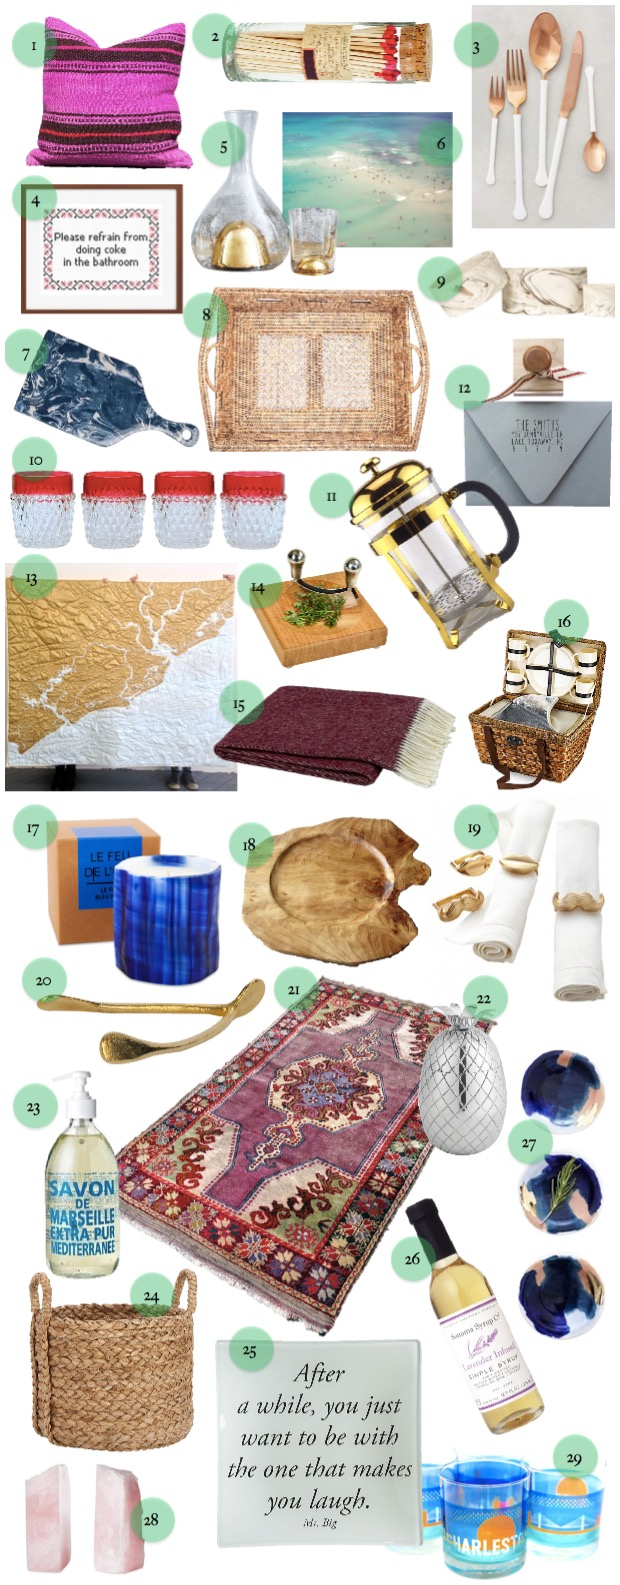 Covet Living Holiday Gift Guide for the Home 2015